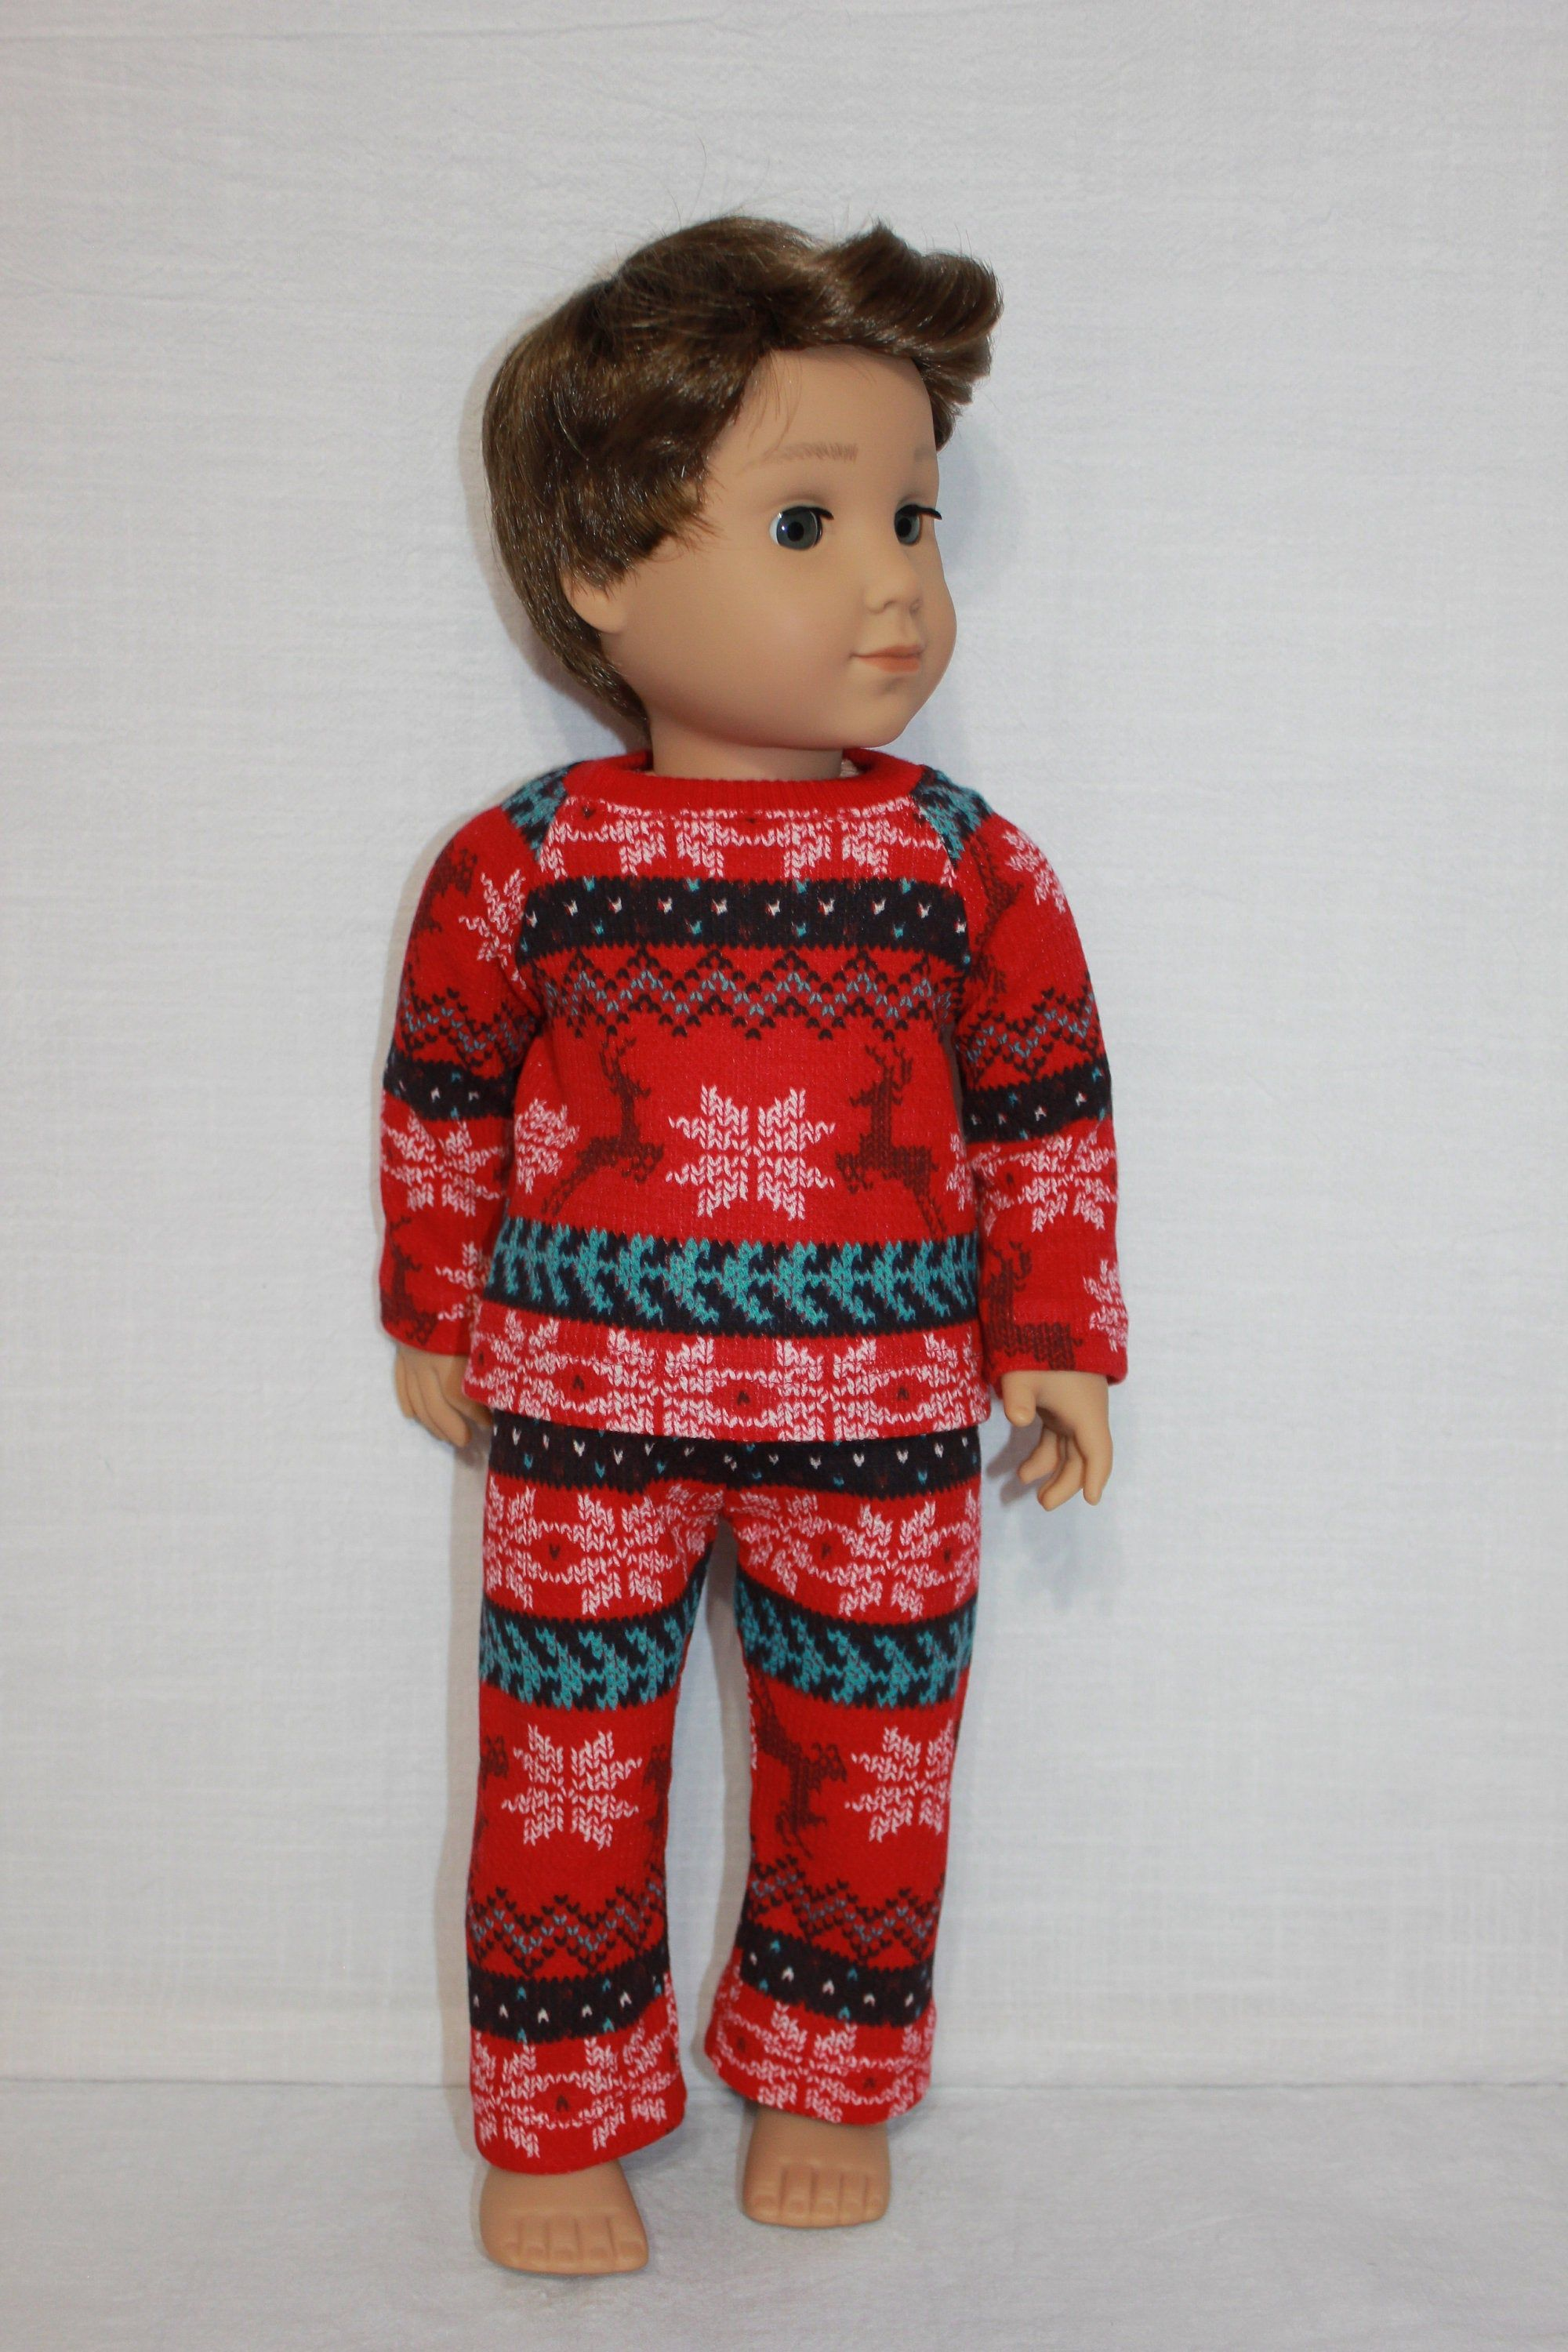 18 inch doll clothes,  Christmas print doll pajamas, snowflake reindeer fairisle print doll pajamas #18inchdollsandclothes